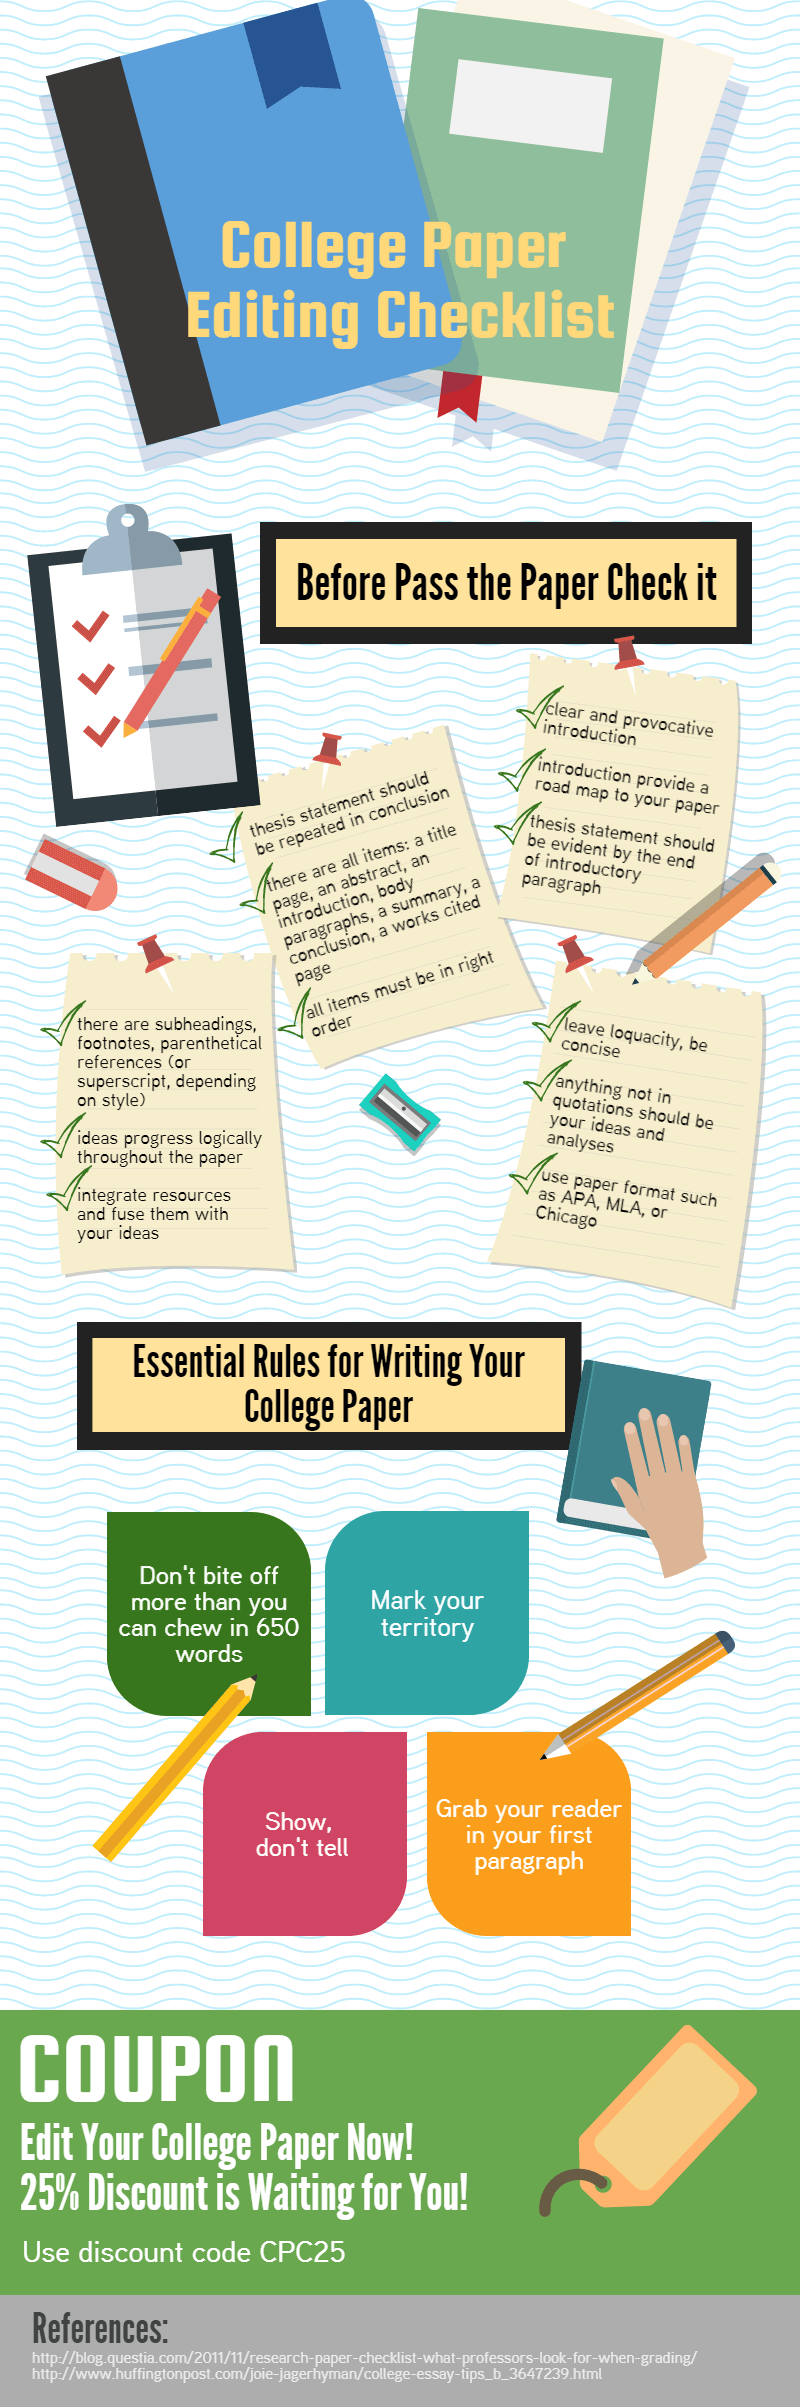 College-Paper-Editing-Checklist